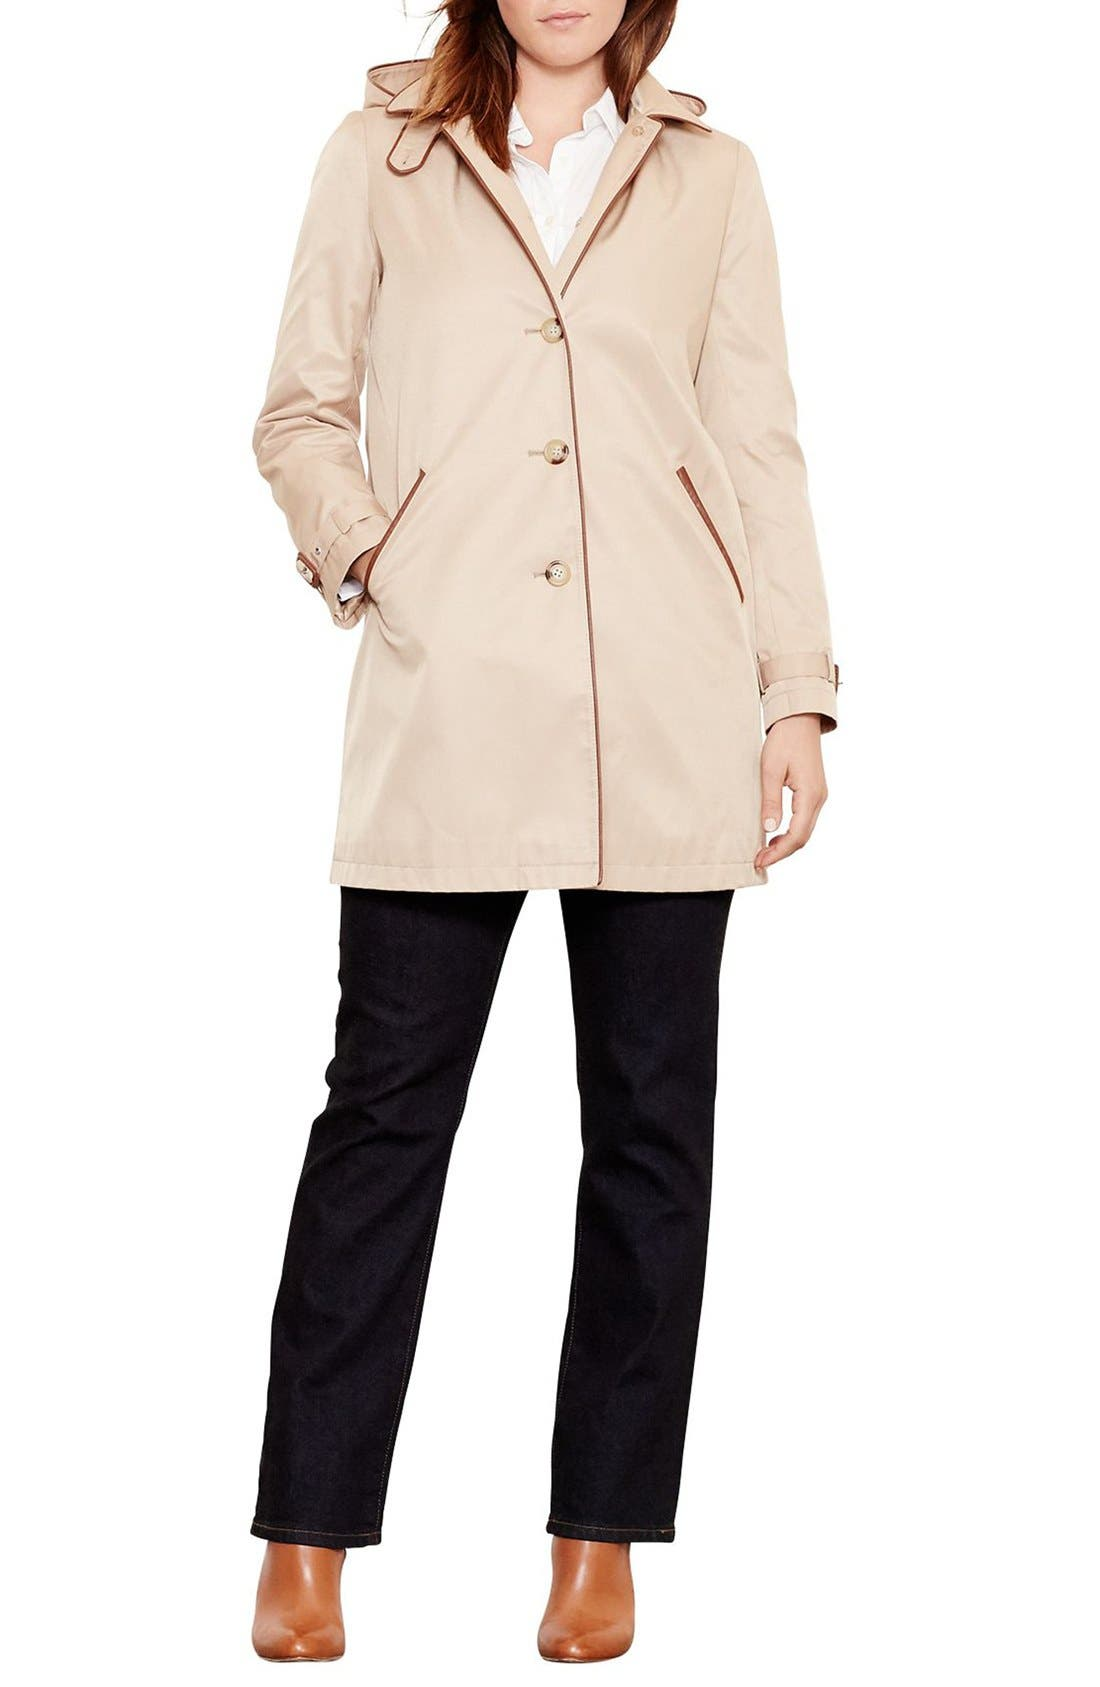 Alternate Image 1 Selected - Lauren Ralph Lauren Faux Leather Trim Raincoat (Plus Size)